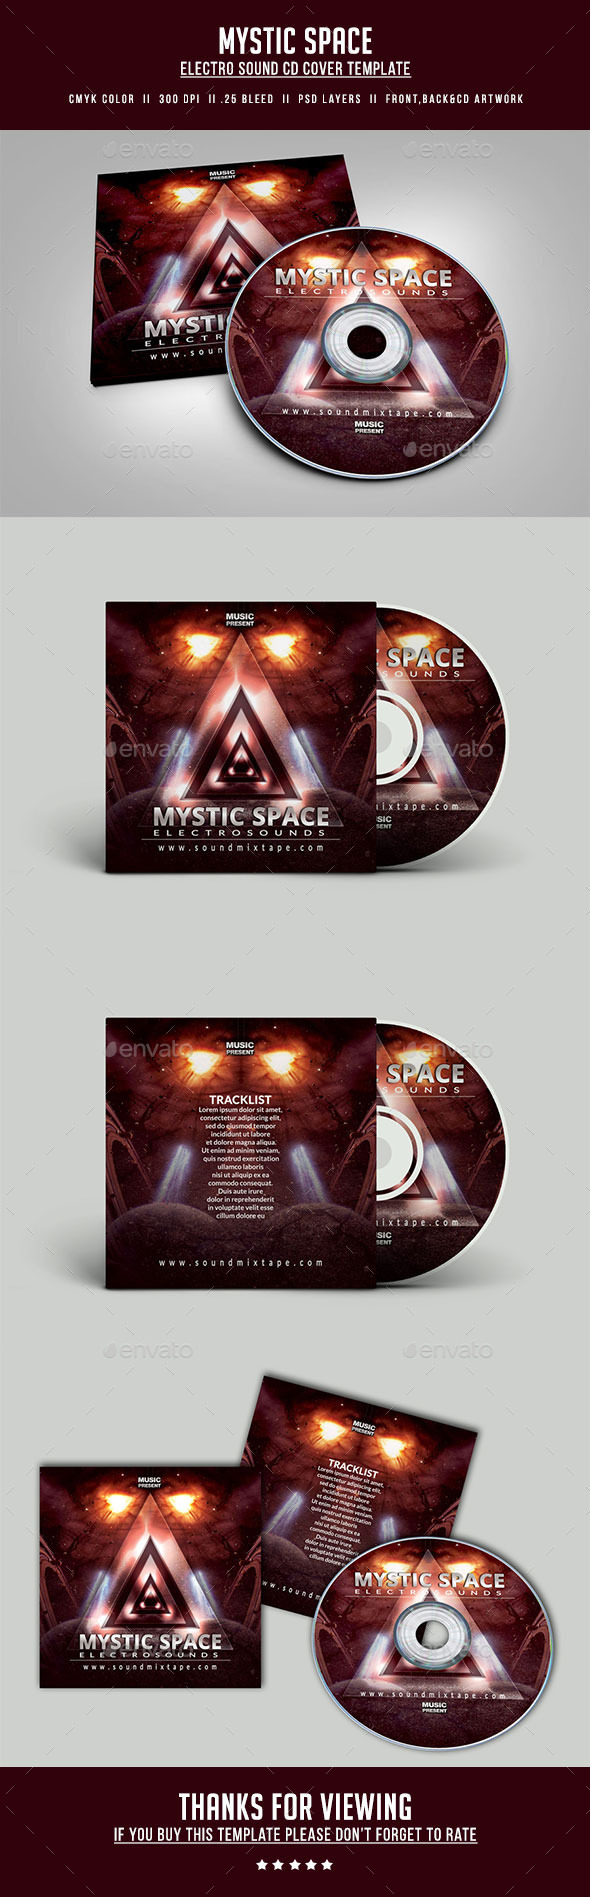 GraphicRiver Mystic Space CD Cover 11217236